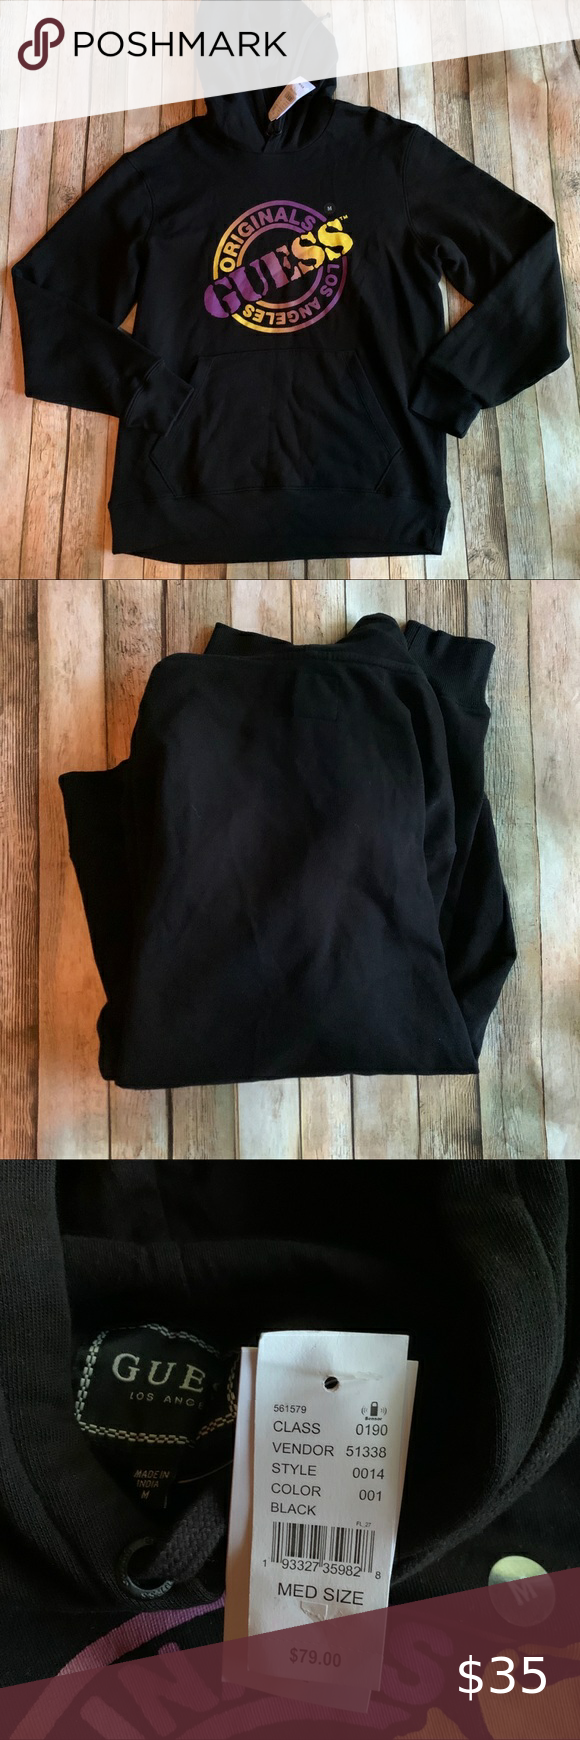 Guess Ombre Logo Hoodie Nwt Guess Ombre Logo Hoodie New With Tags Size Men S Medium Cotton Material Black Wi Long Sleeve Tshirt Men Clothes Design Plus Fashion [ 1740 x 580 Pixel ]